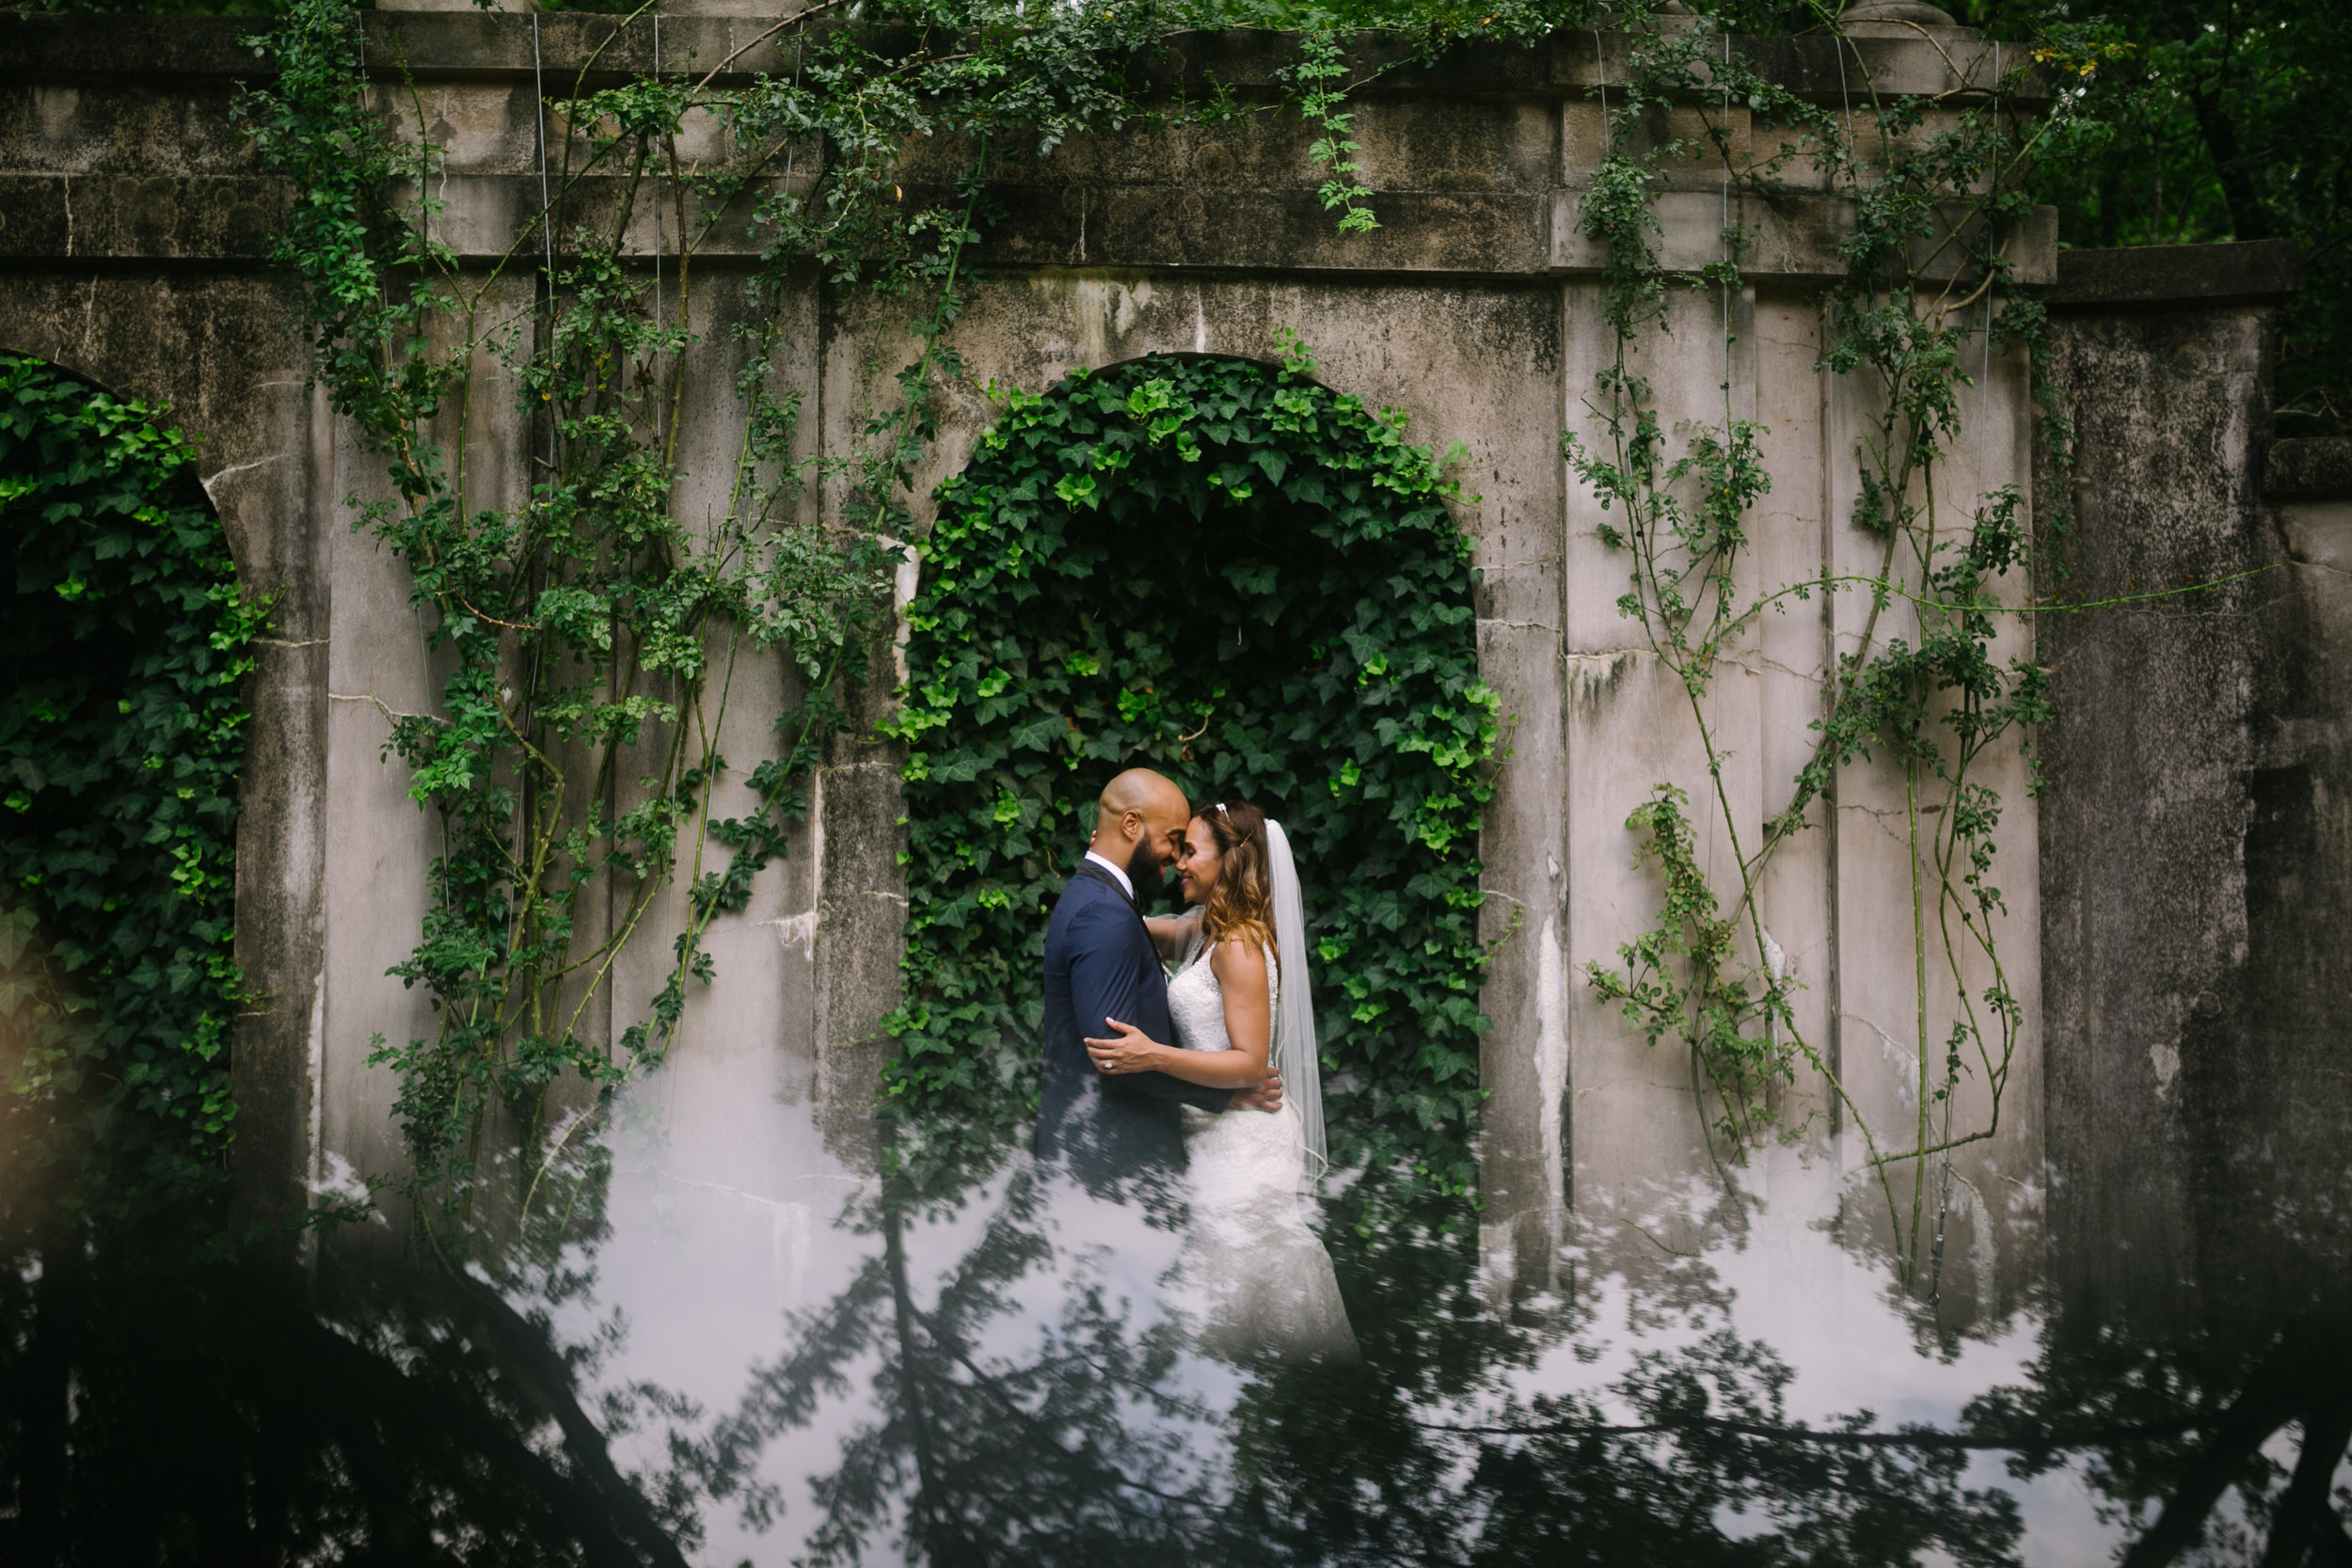 bride and groom arch and ivy wedding photo